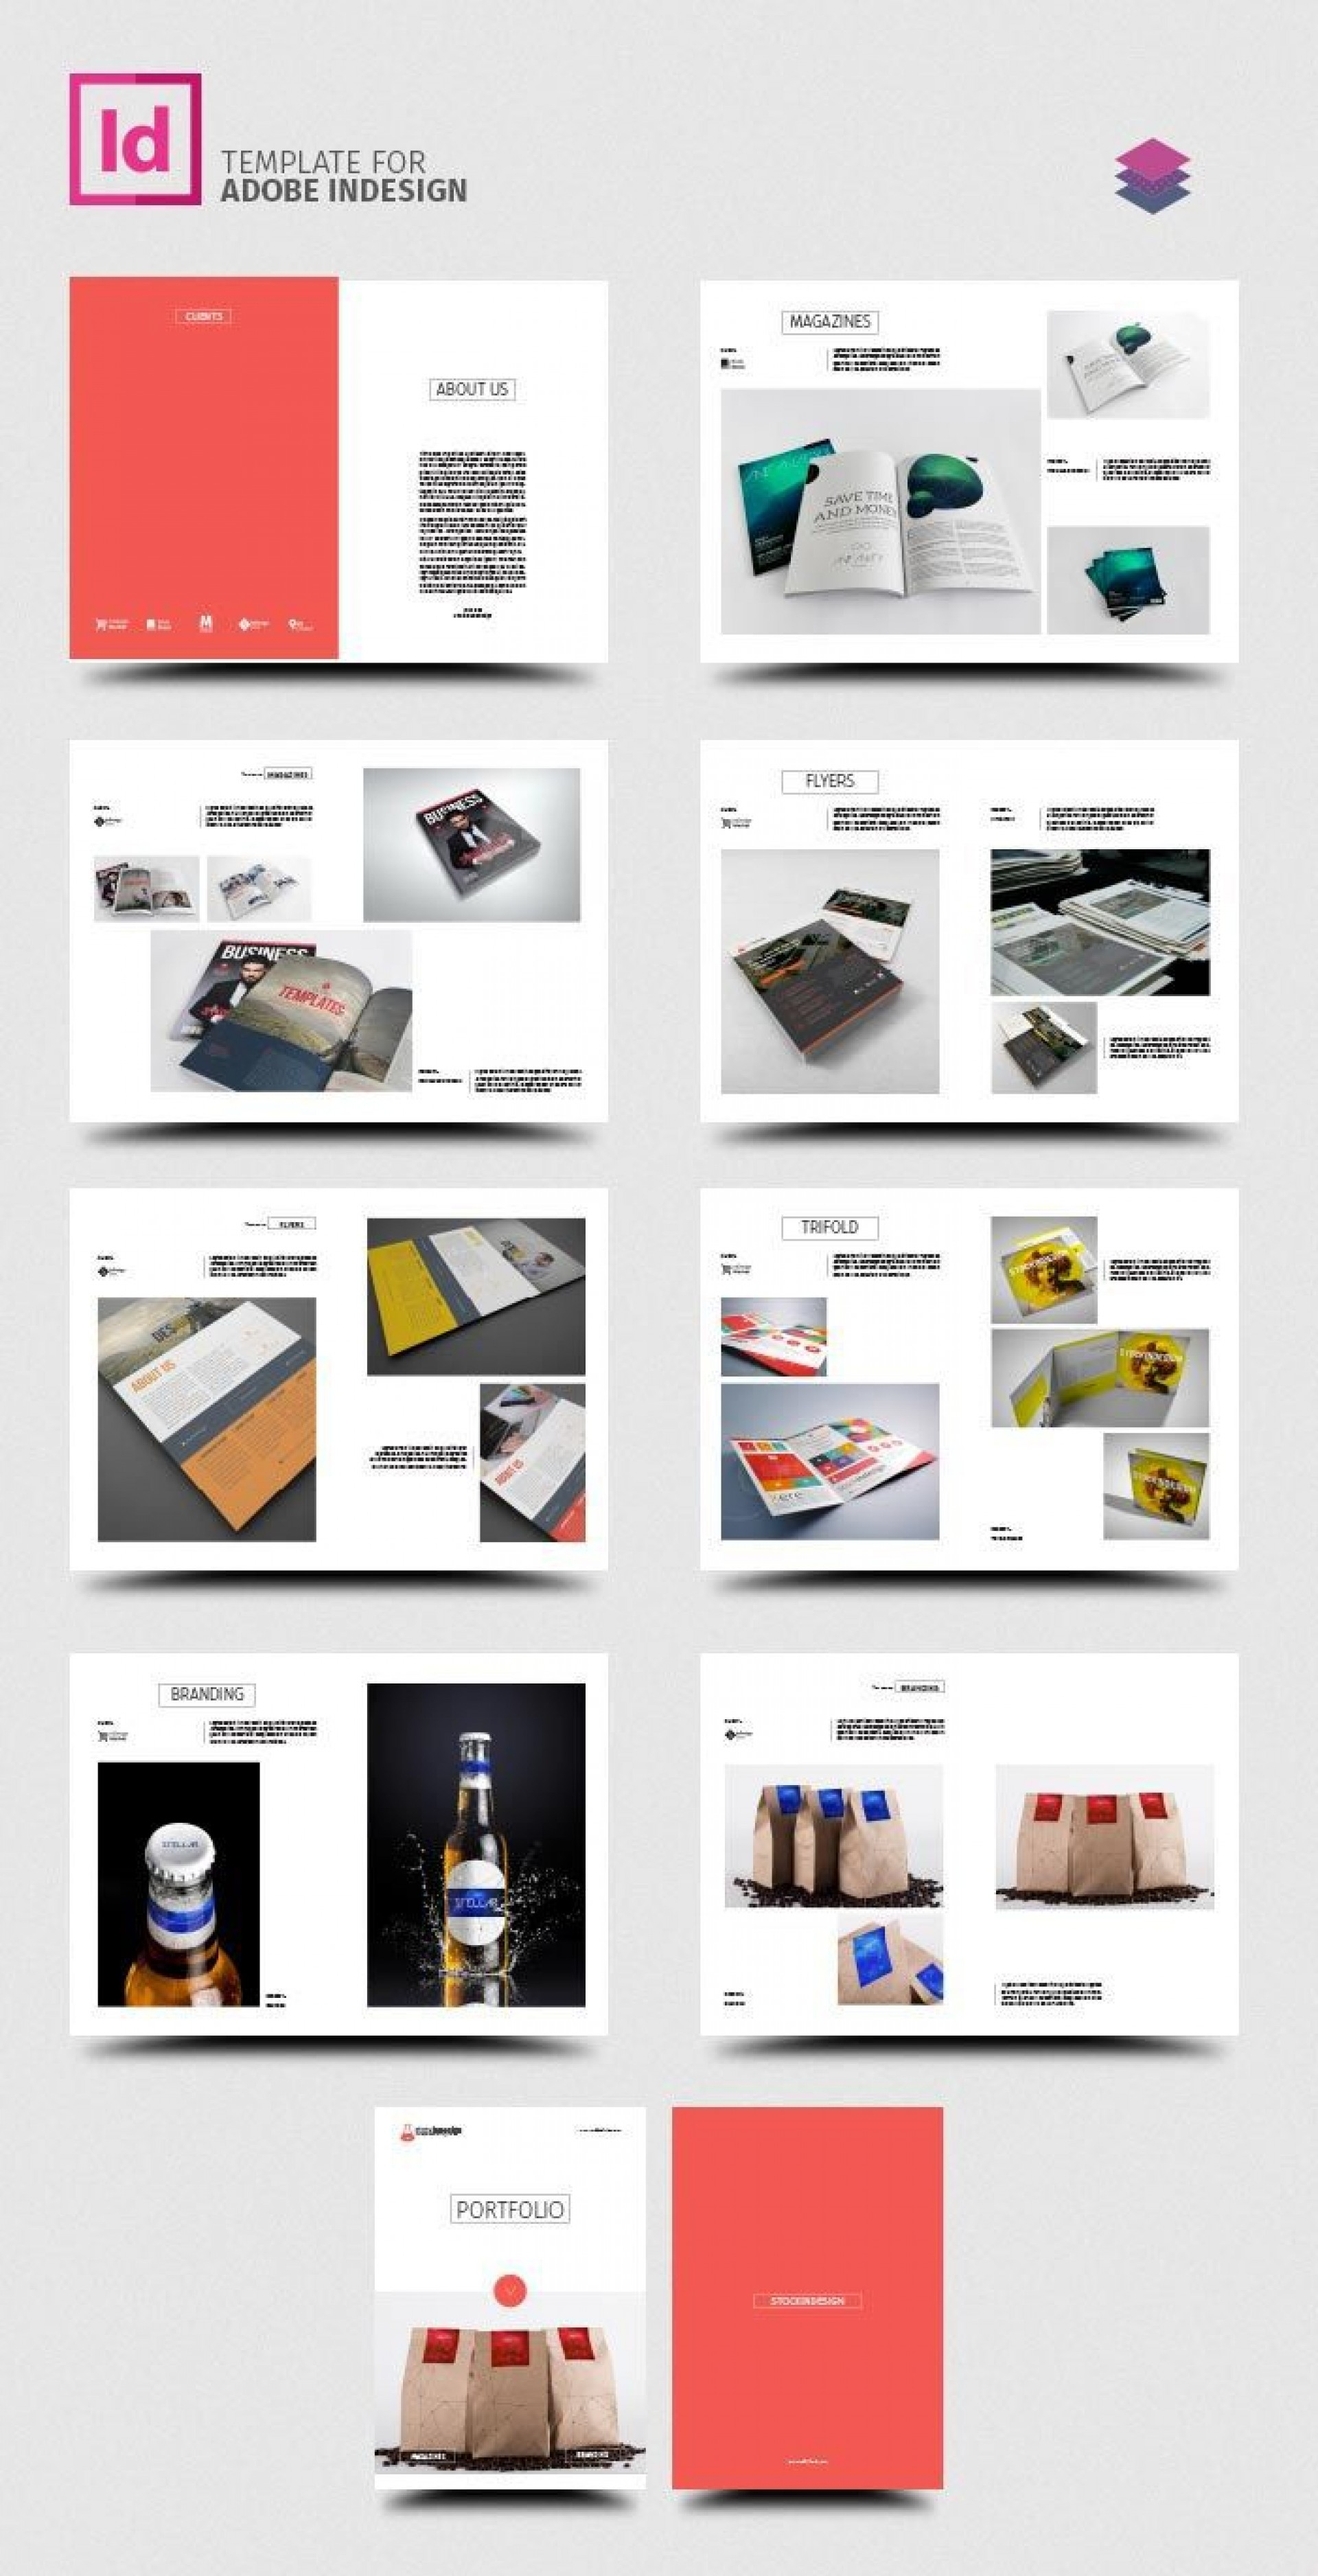 002 Fearsome Adobe Indesign Brochure Template Free Download High Def 1920